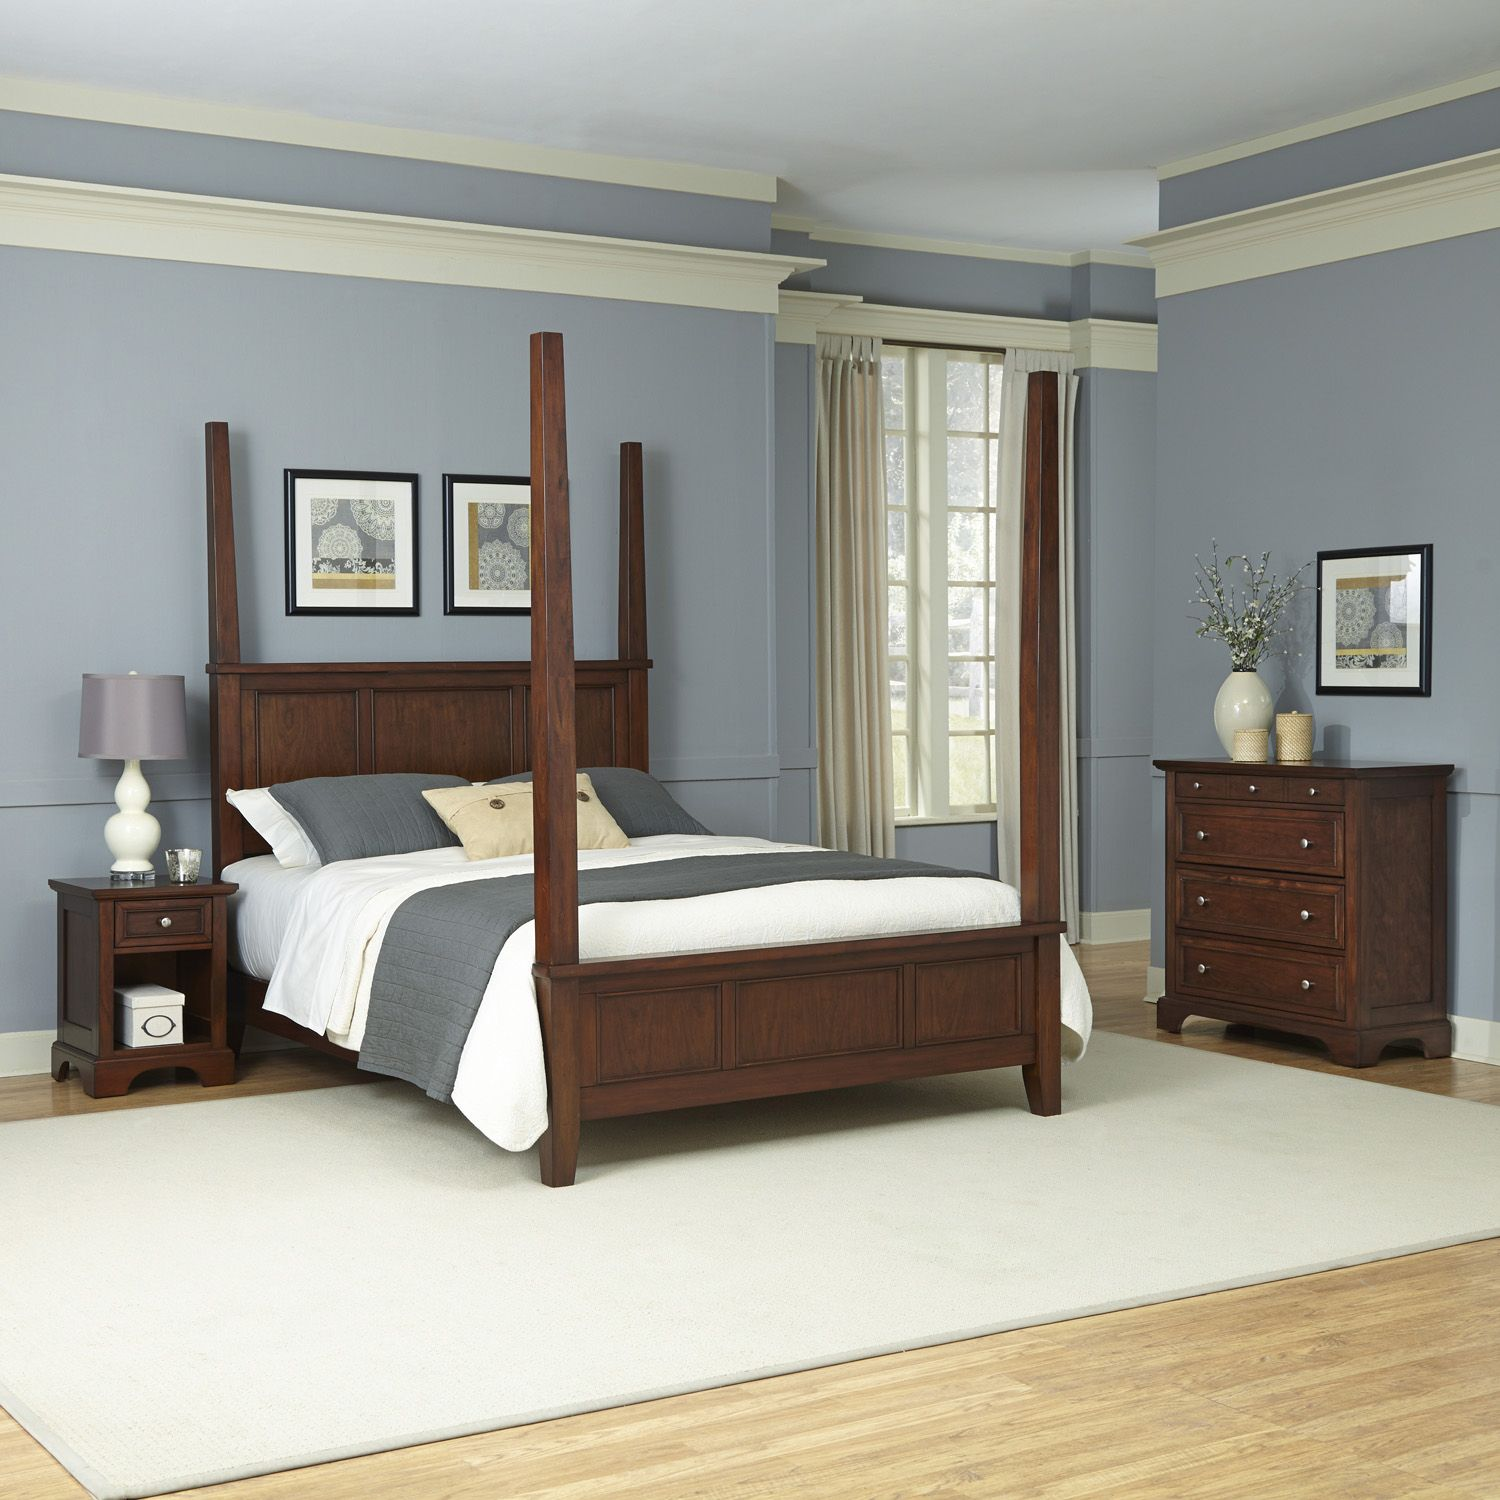 Awesome Home Styles piece Chesapeake Poster Bedroom Set